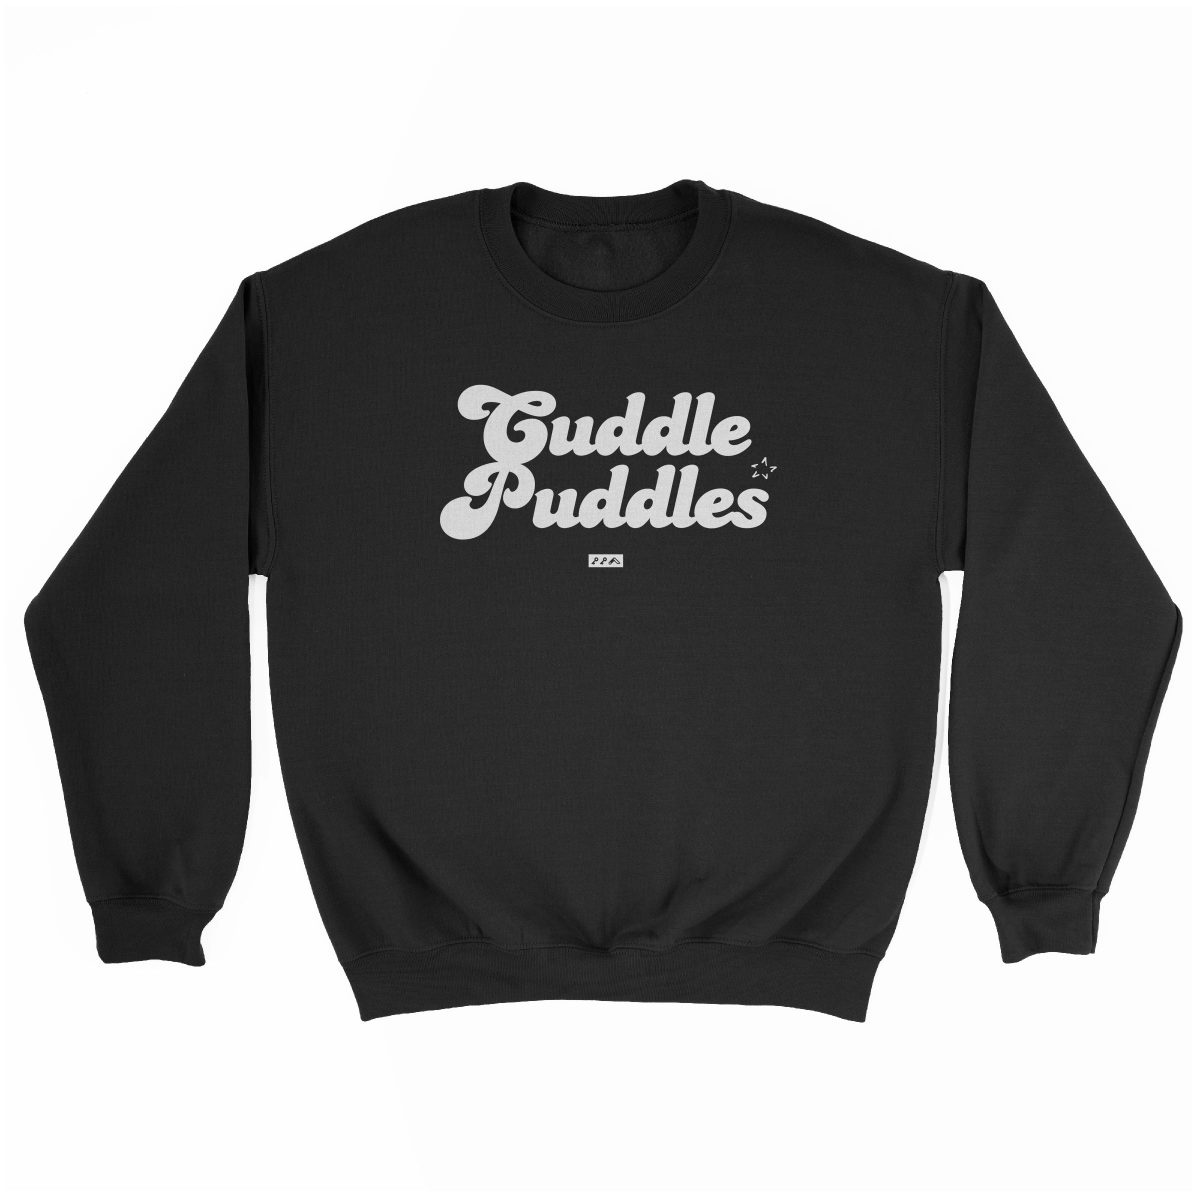 CUDDLE PUDDLE PARTY comfy sweatshirt in black at kikicutt.com